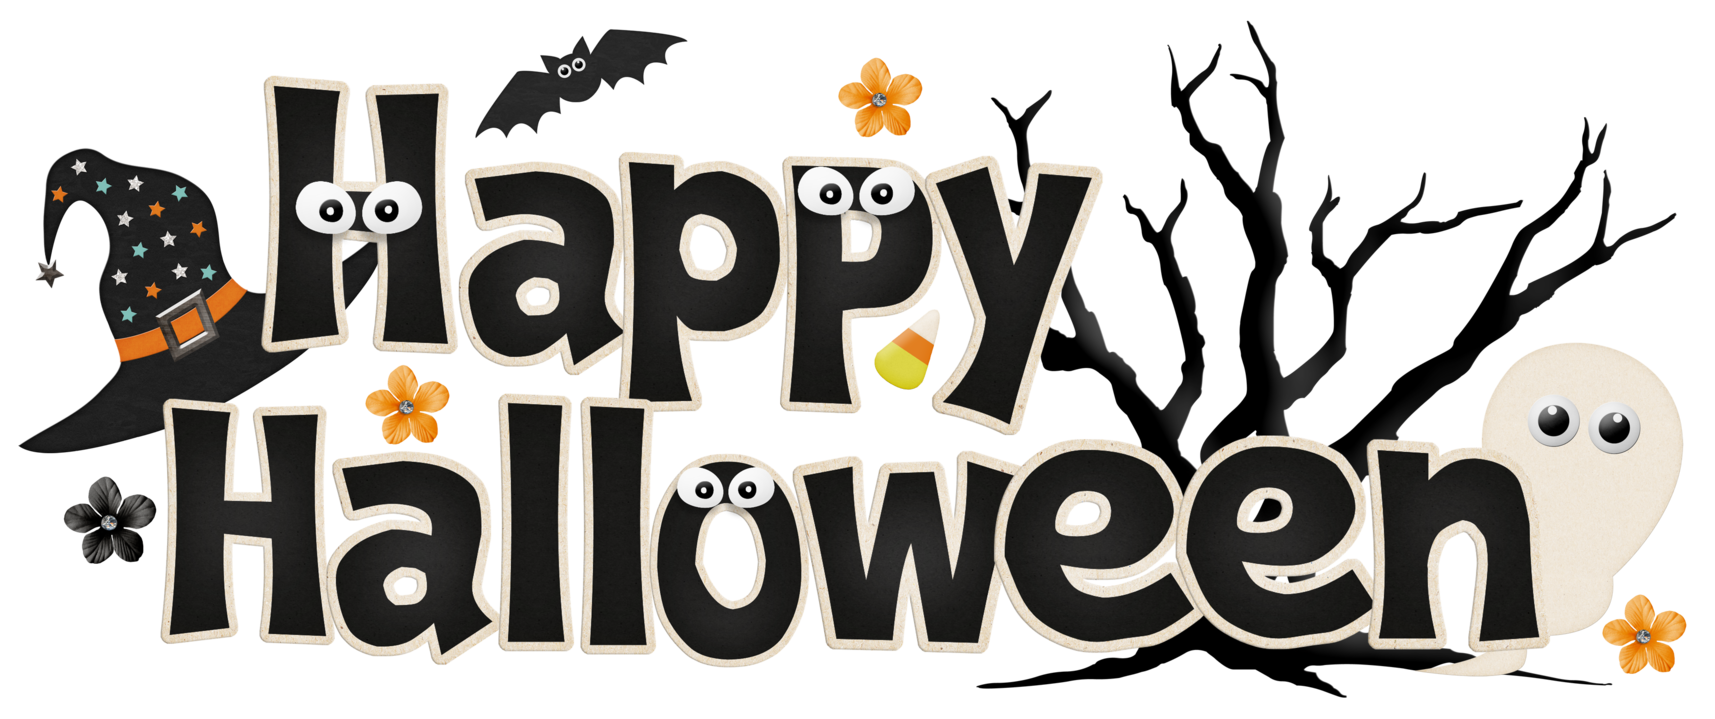 Happy halloween clipart banner clip art Month of october clipart free clipart images clipartwiz 2 clipartix ... clip art